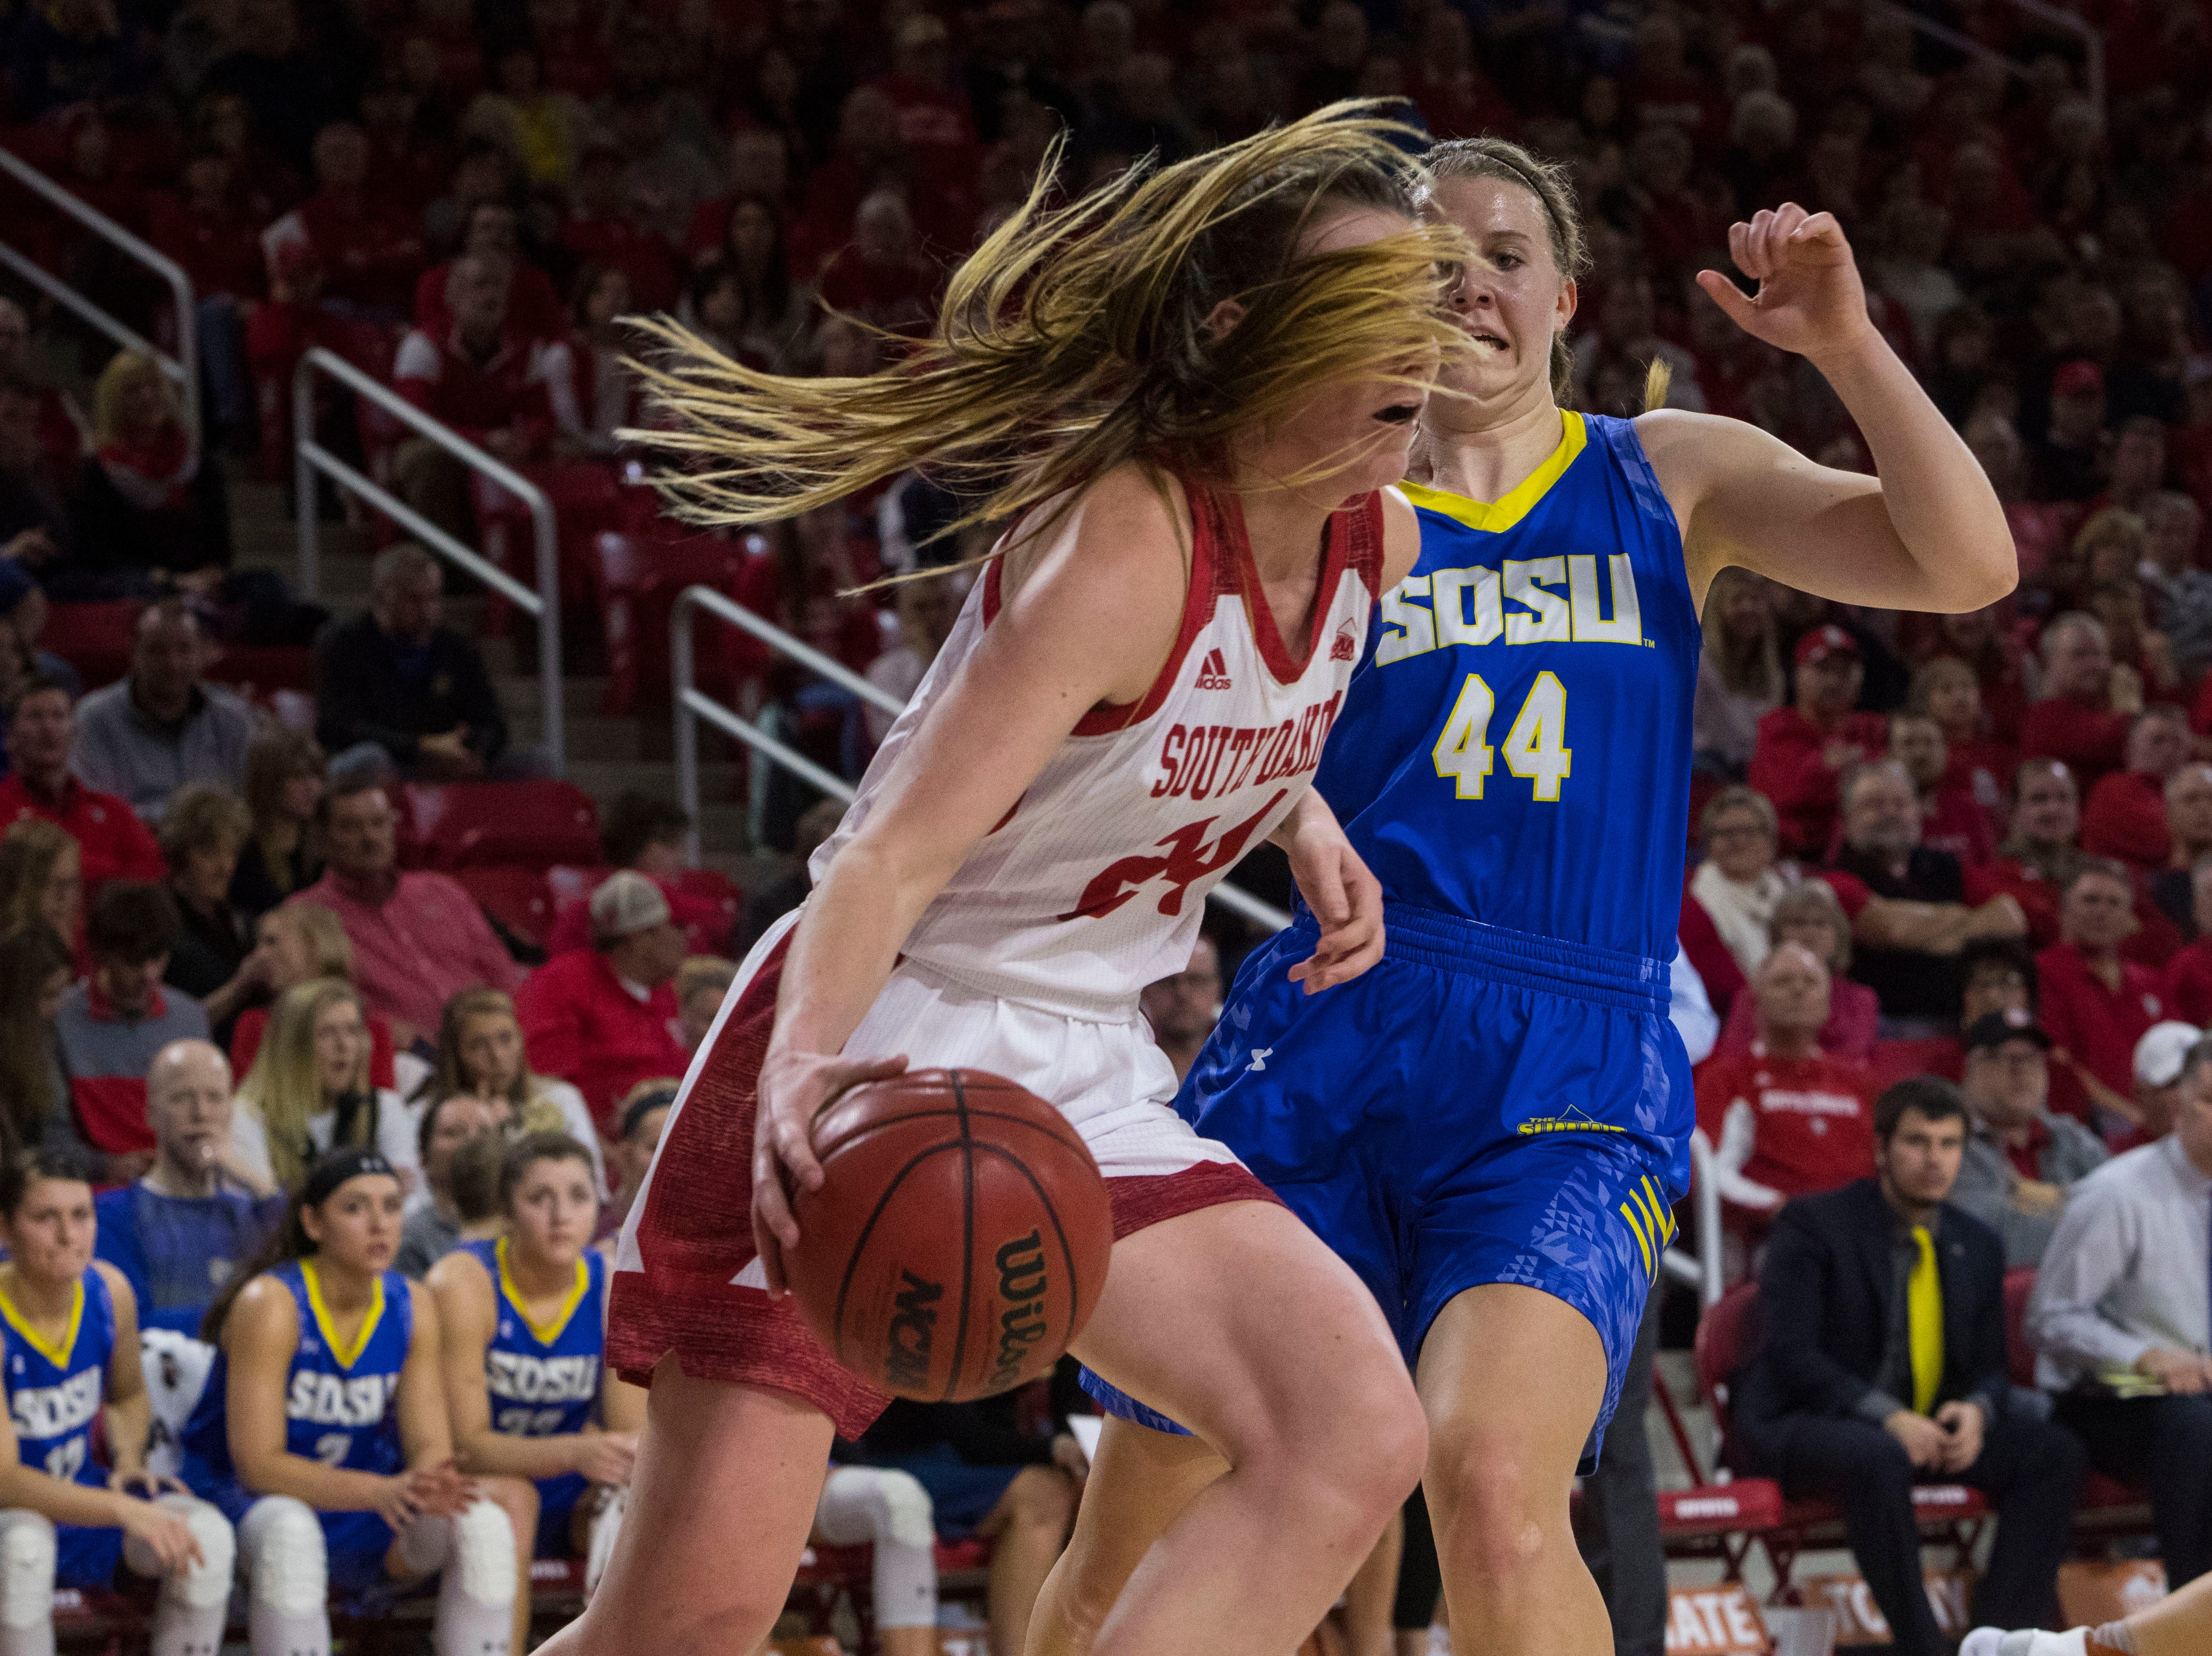 USD's Ciara Duffy (24) dribbles the ball past SDSU's Myah Selland (44) during a game, Sunday, Jan. 6, 2019 in Vermillion, S.D.